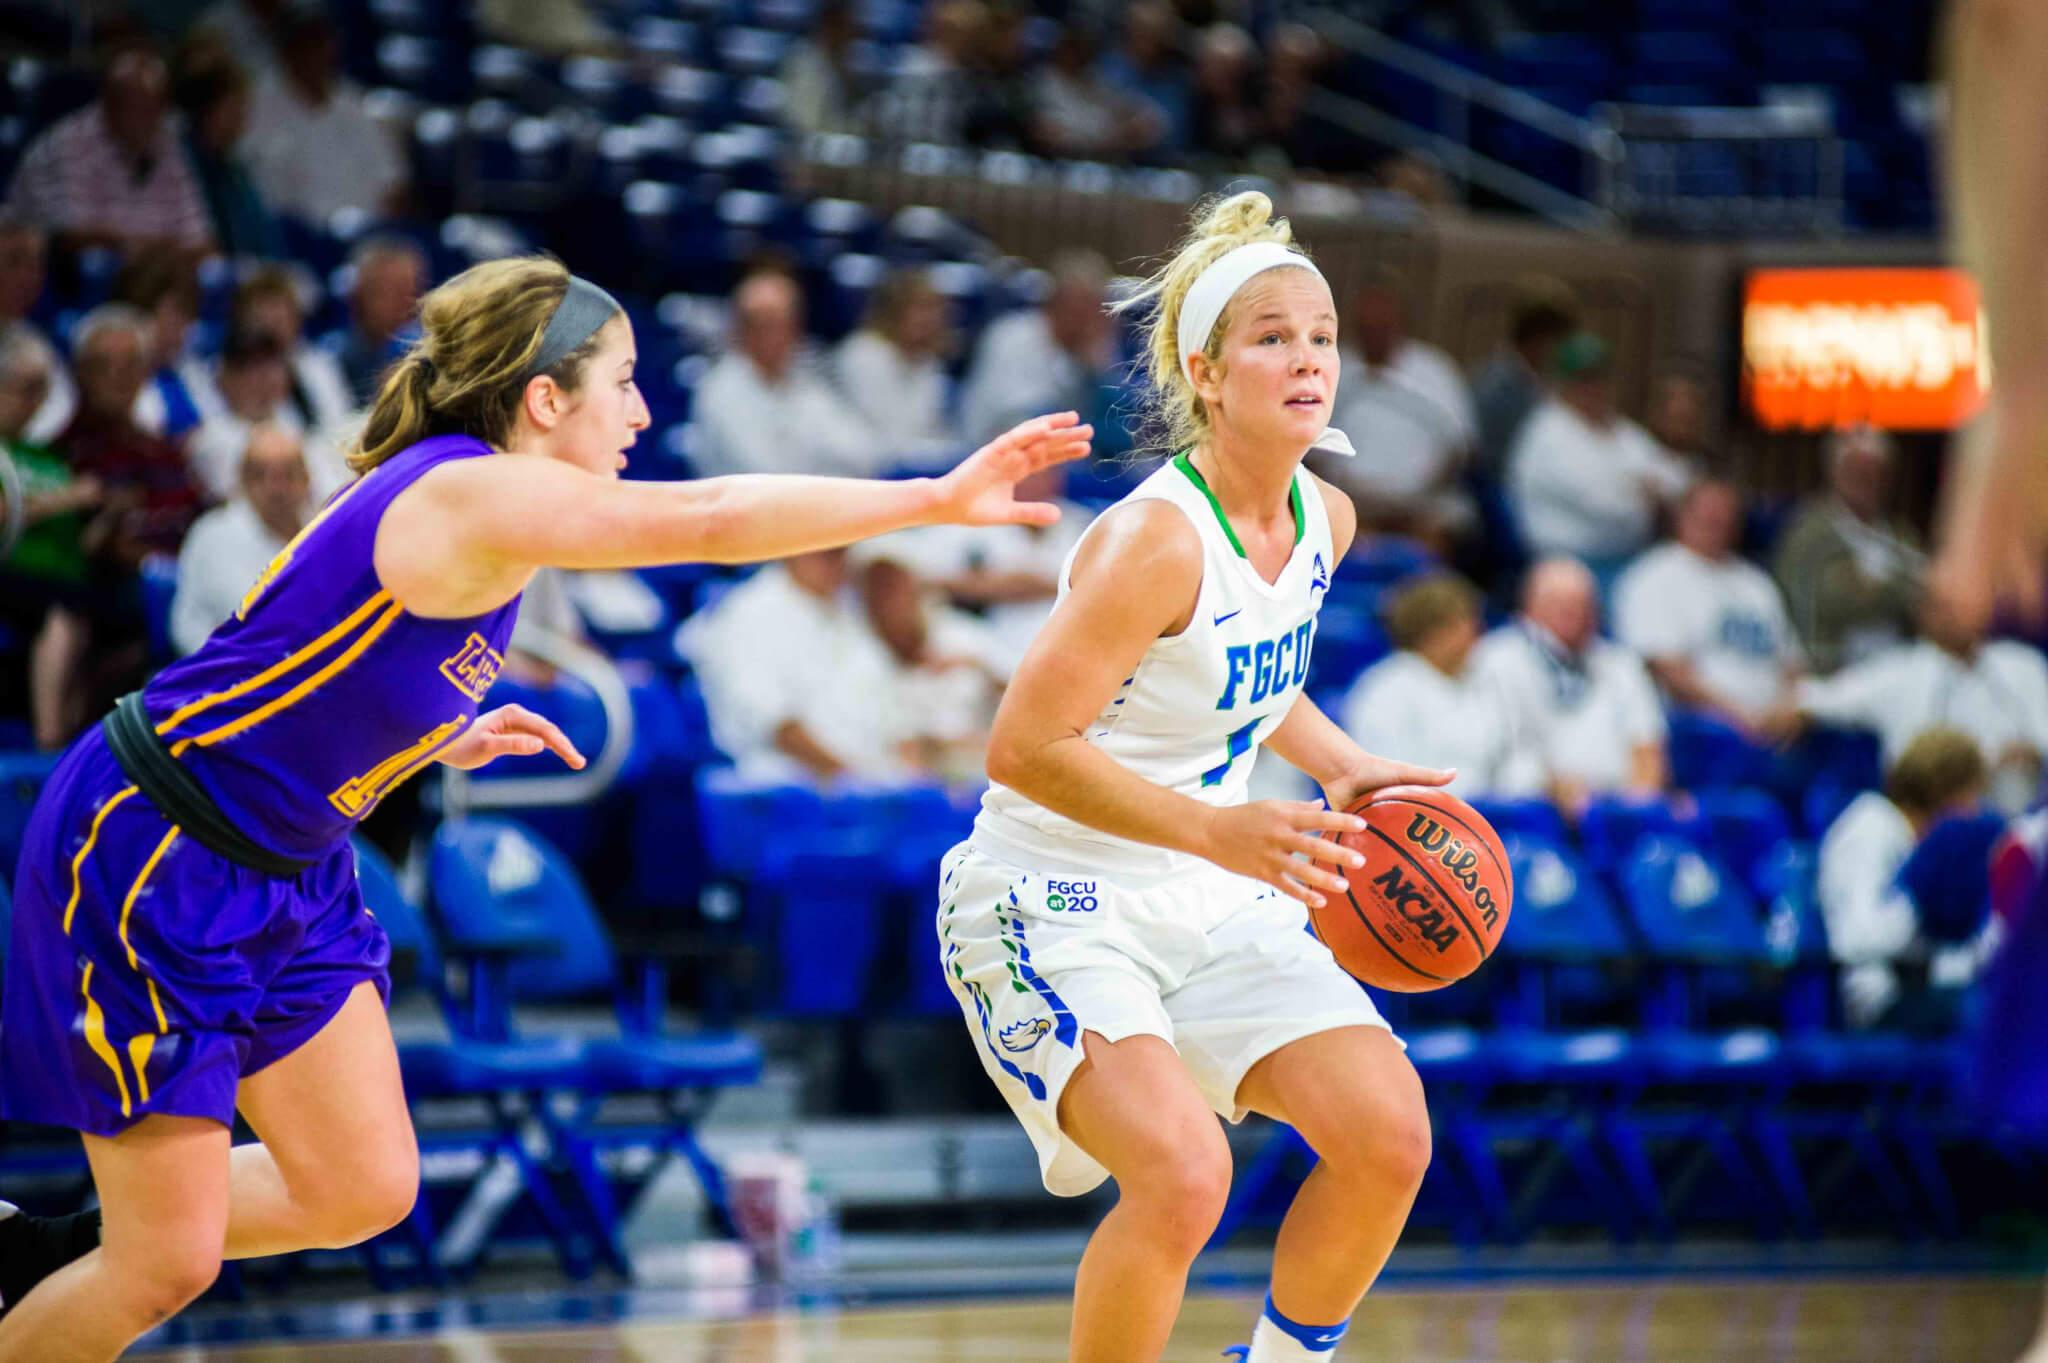 FGCU women's basketball blows past Lipscomb to remain atop the ASUN